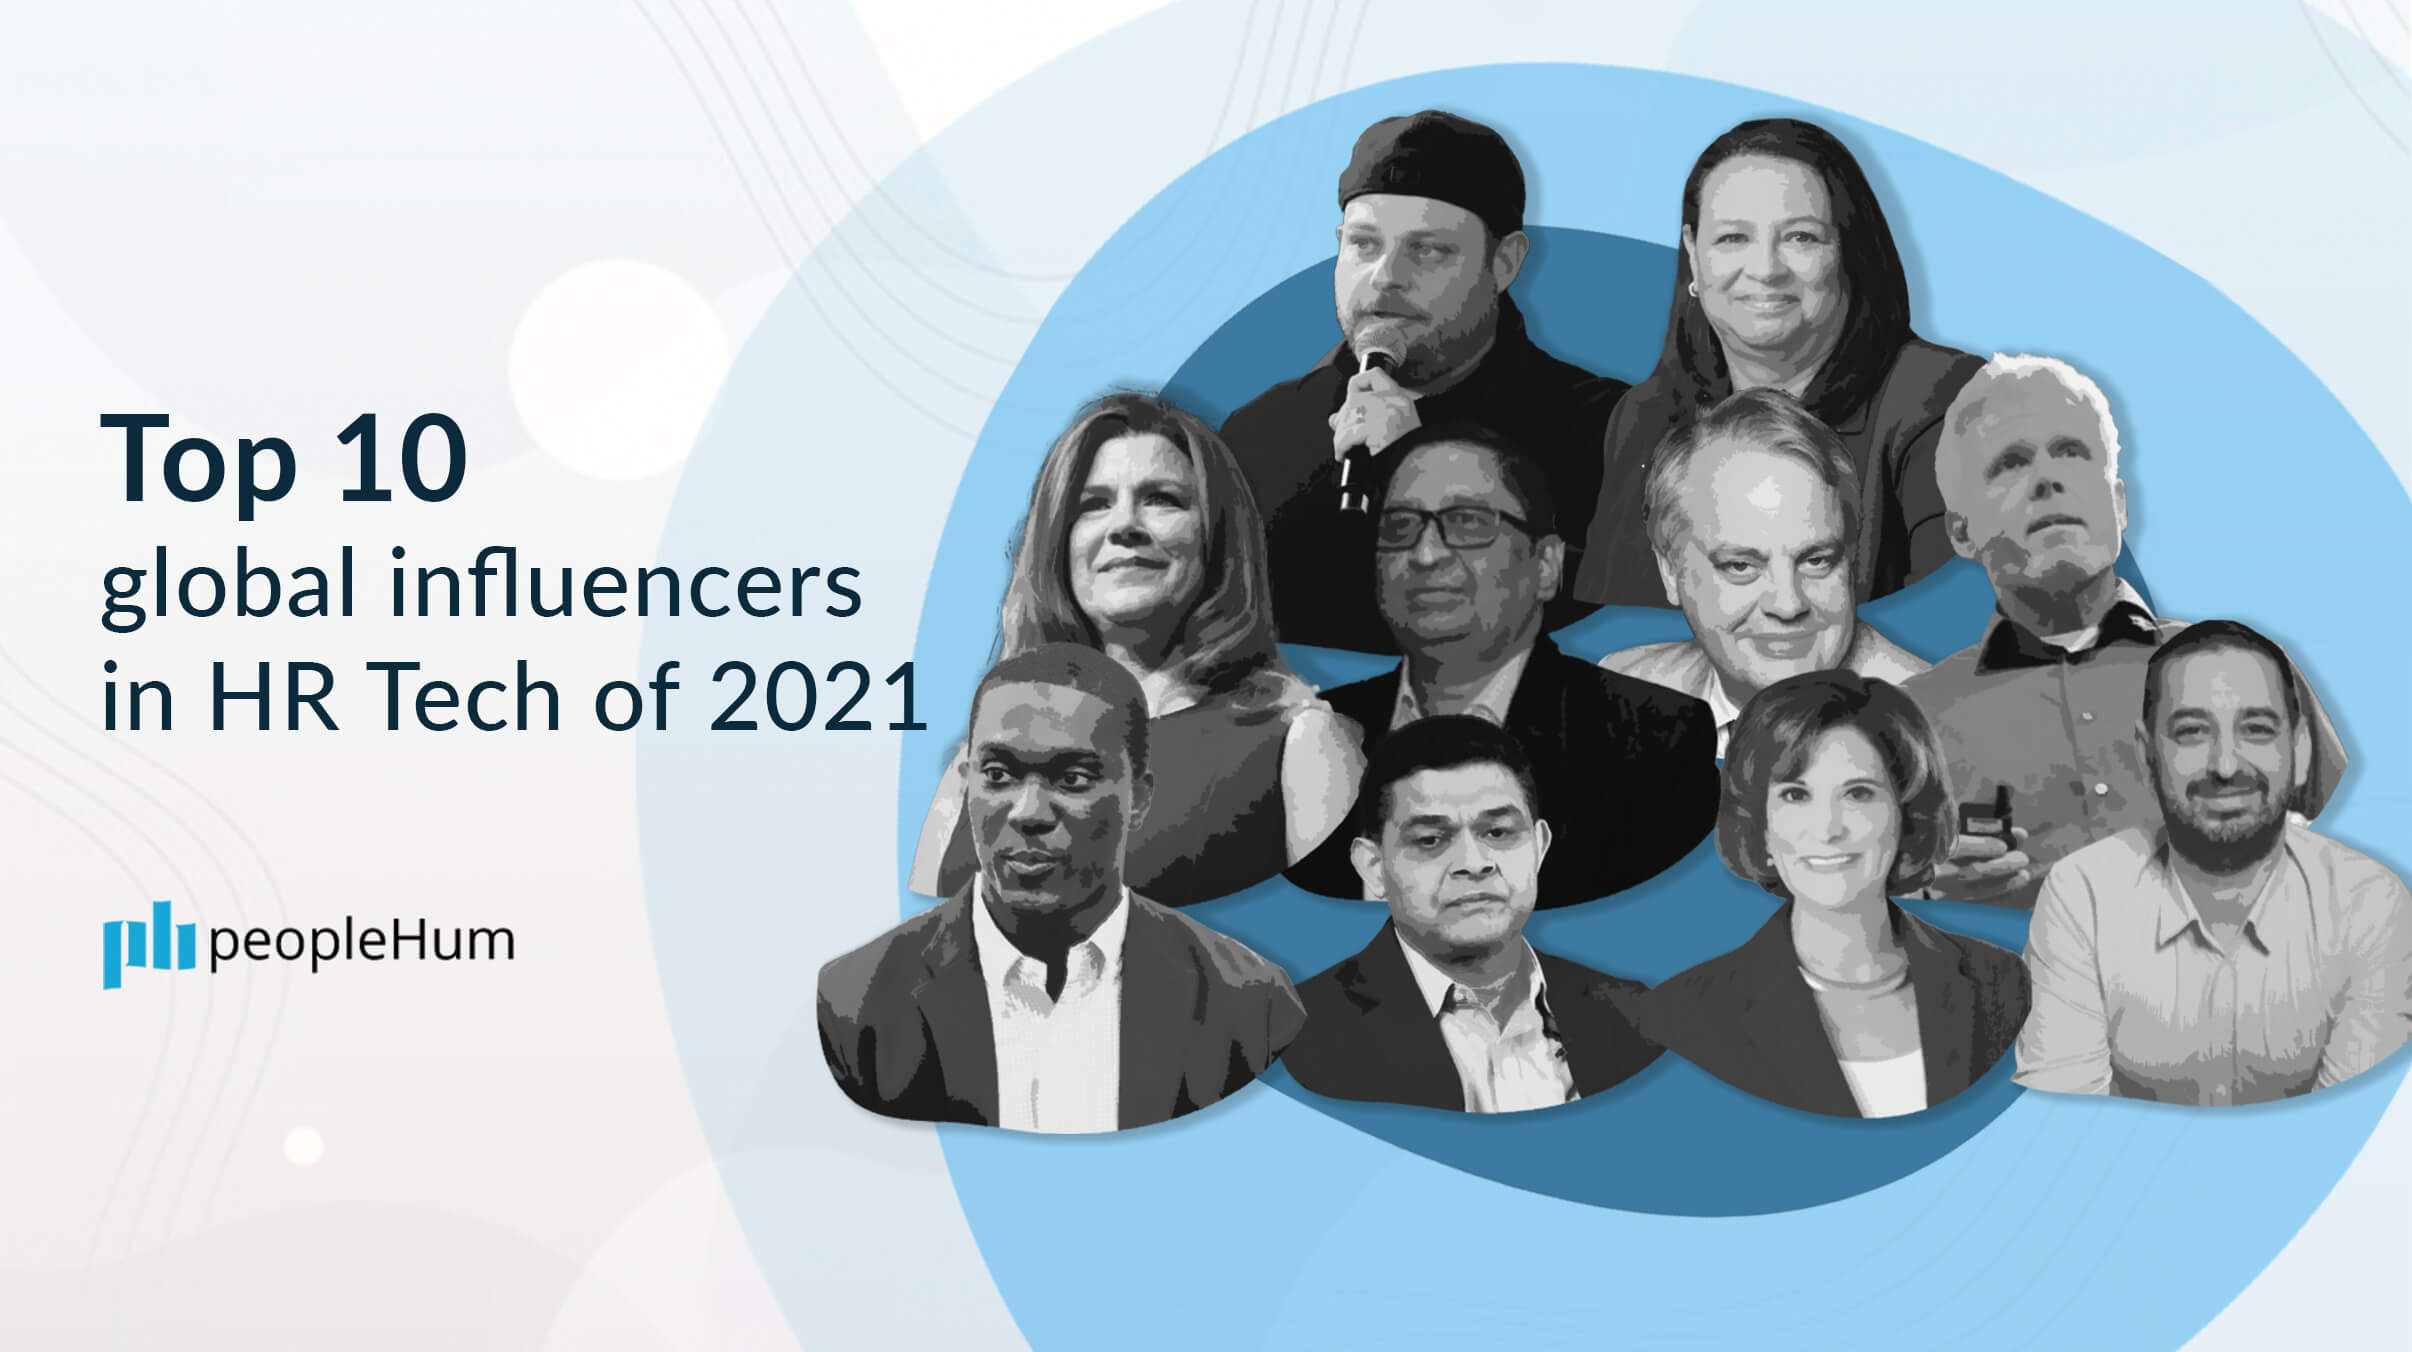 Top 10 global influencers in HR Tech of 2021